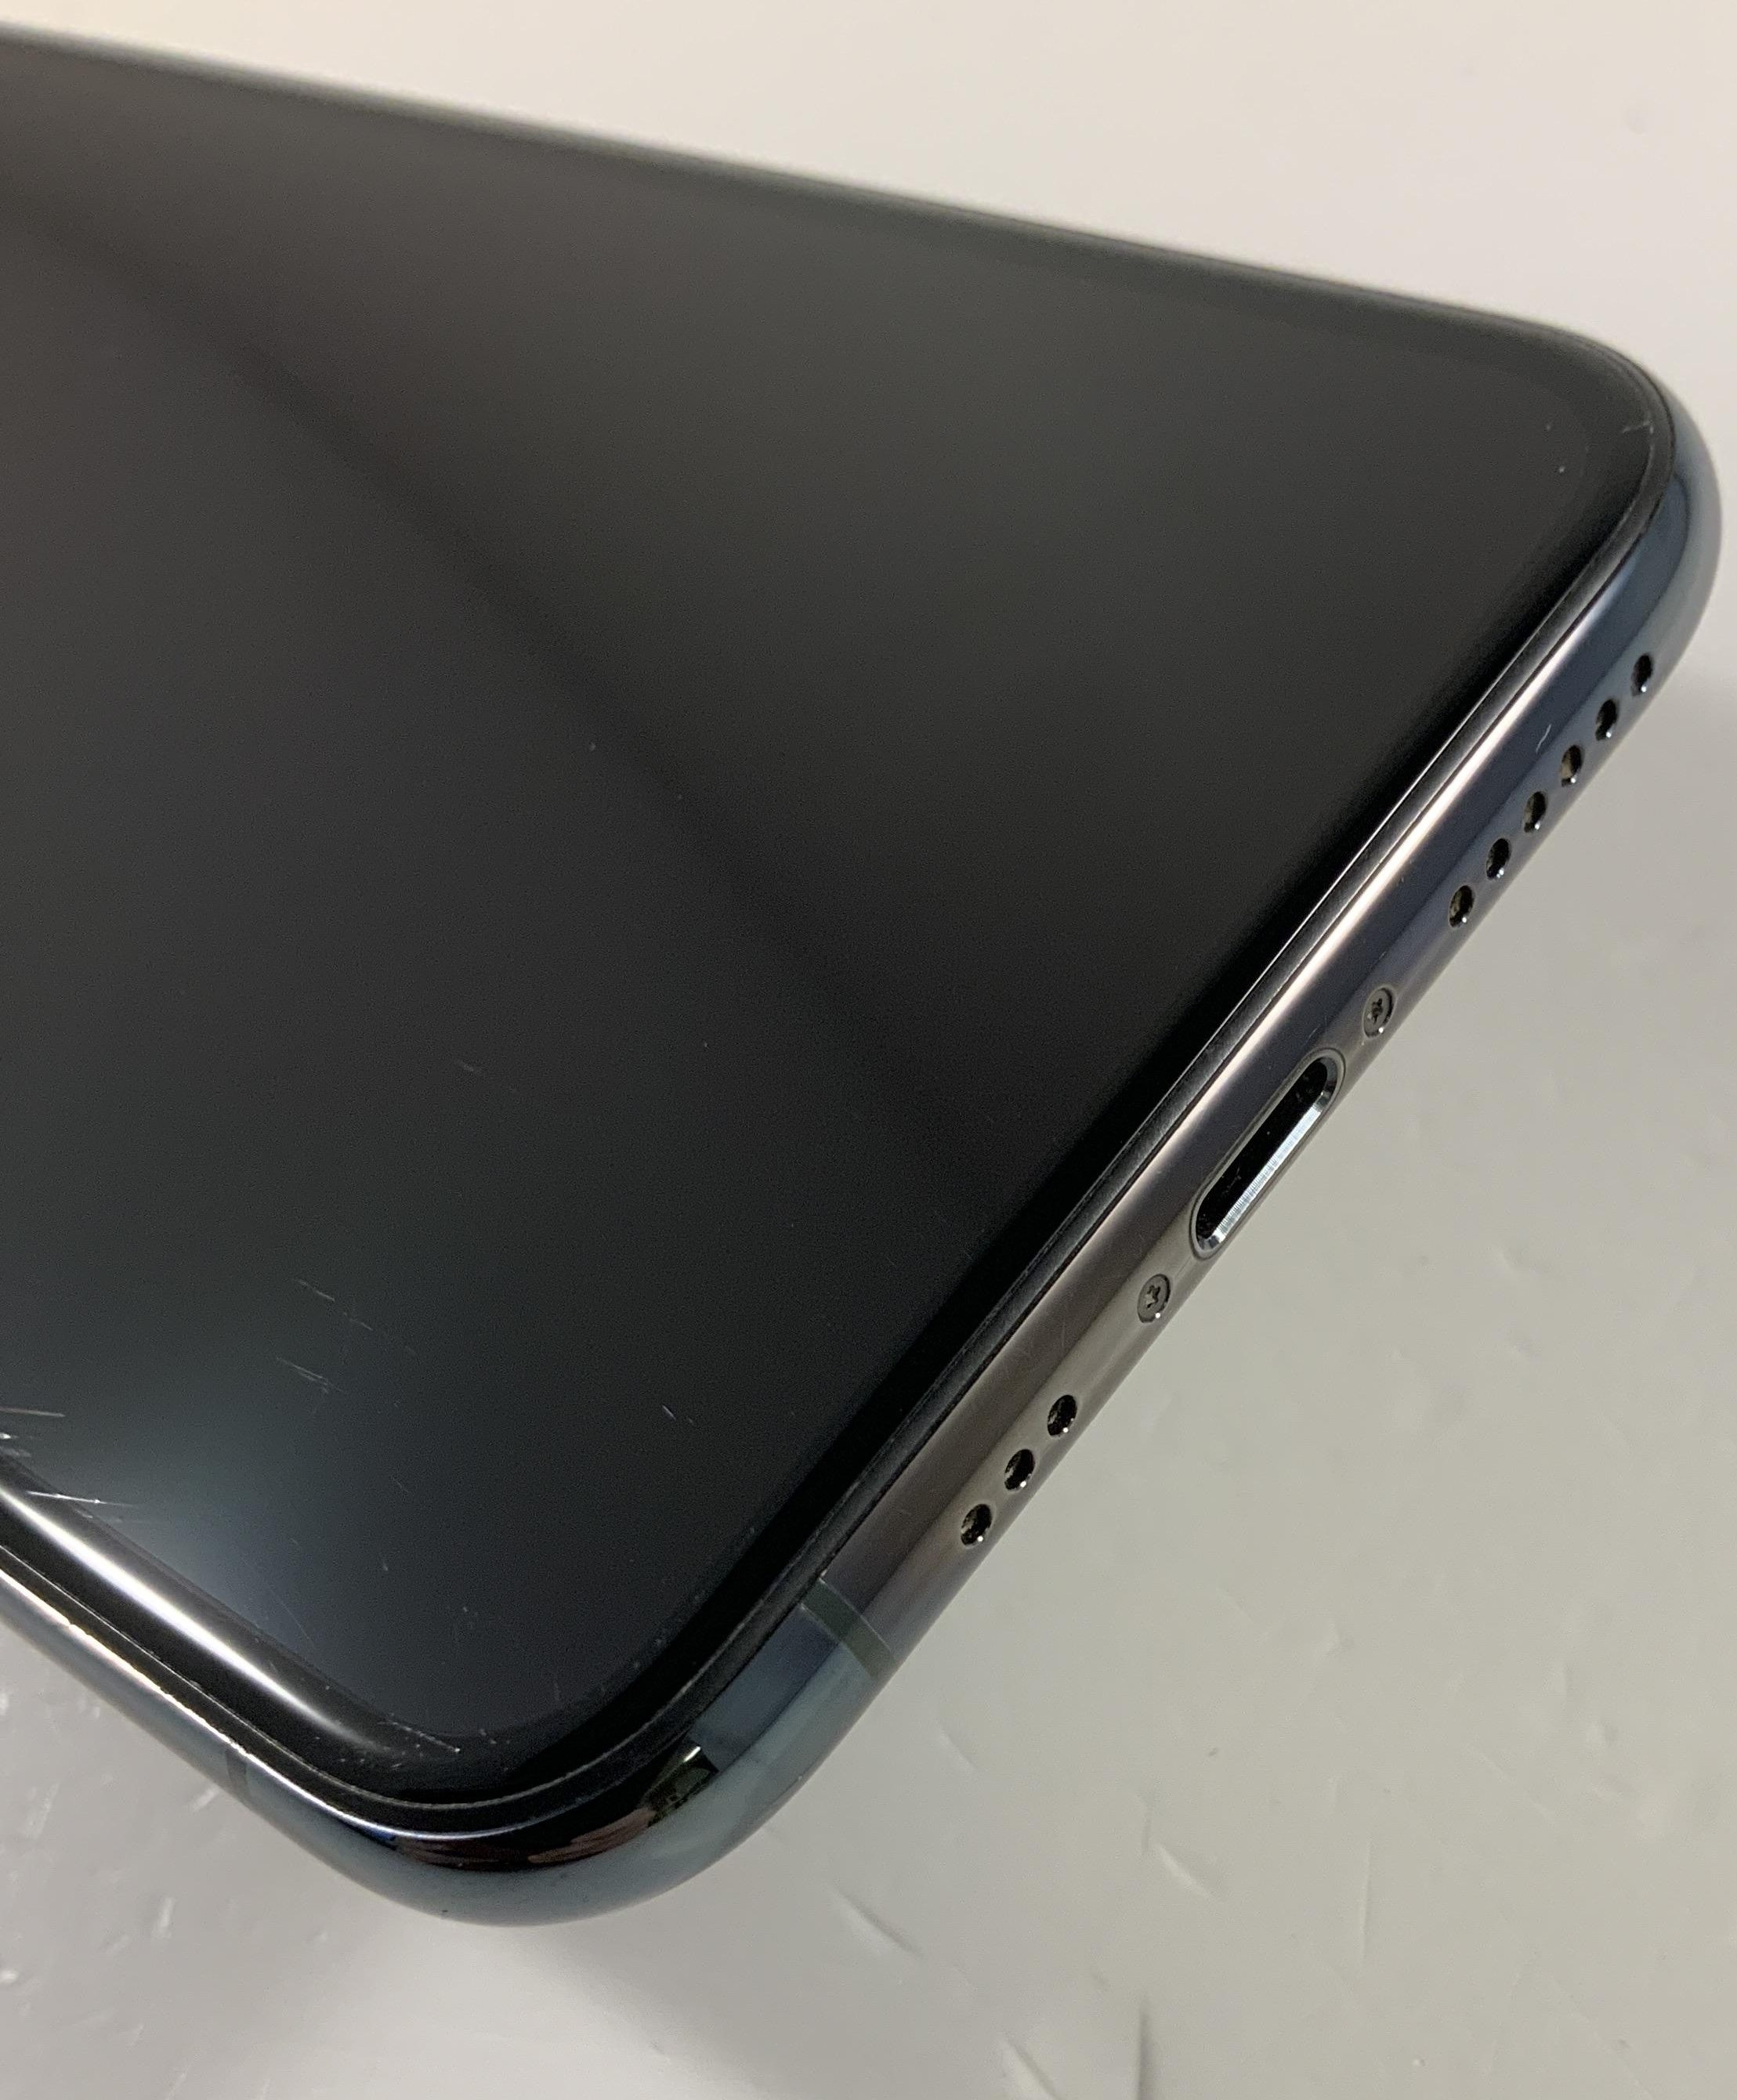 iPhone 11 Pro 64GB, 64GB, Midnight Green, immagine 4